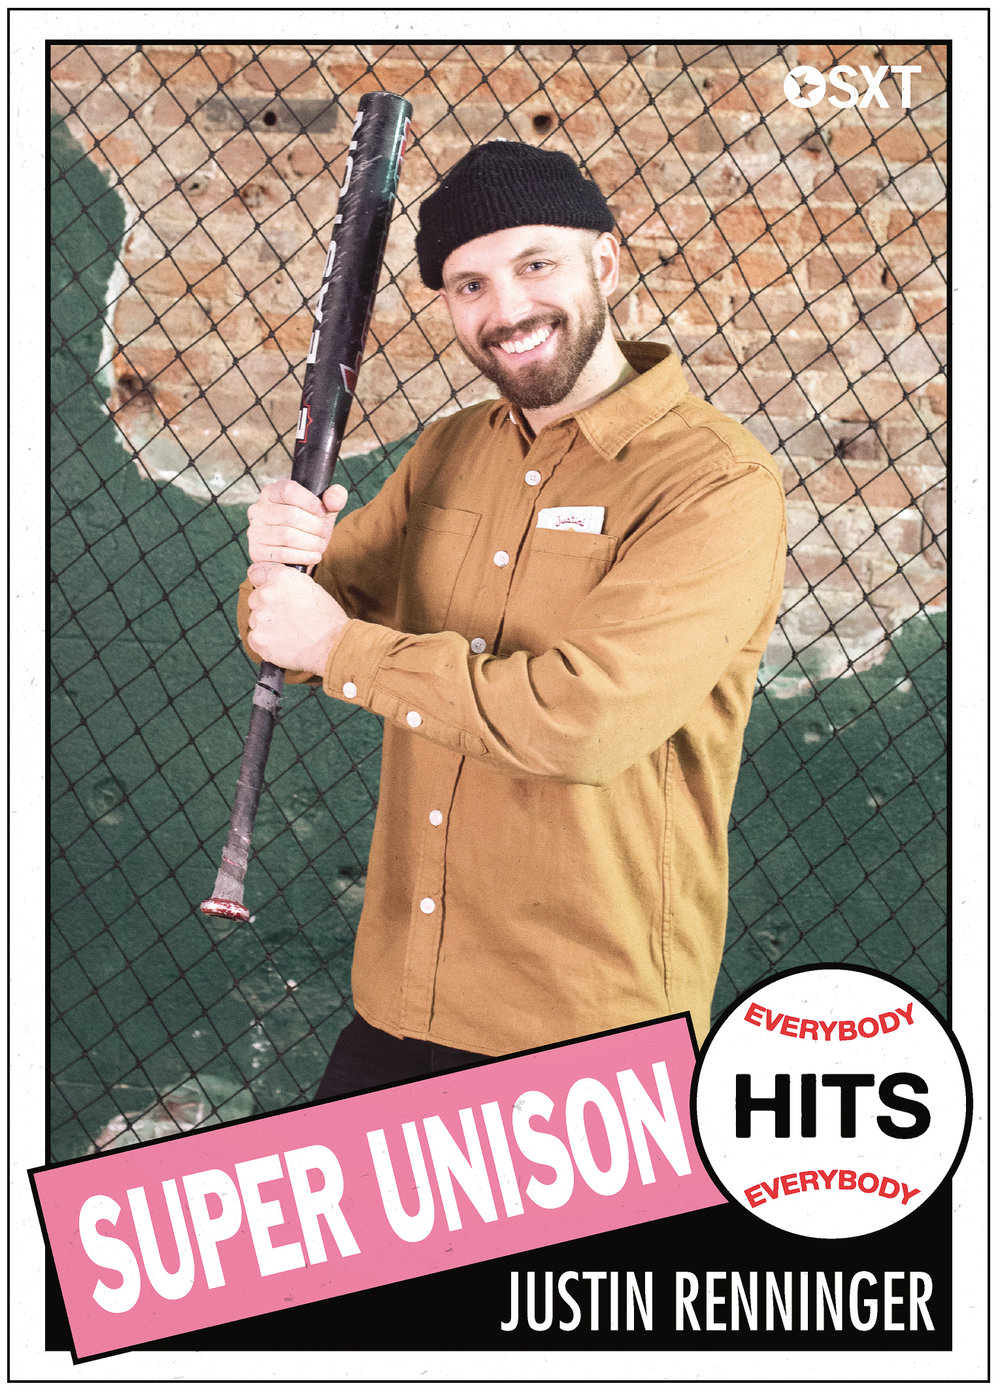 Justin Renninger of Super Unison